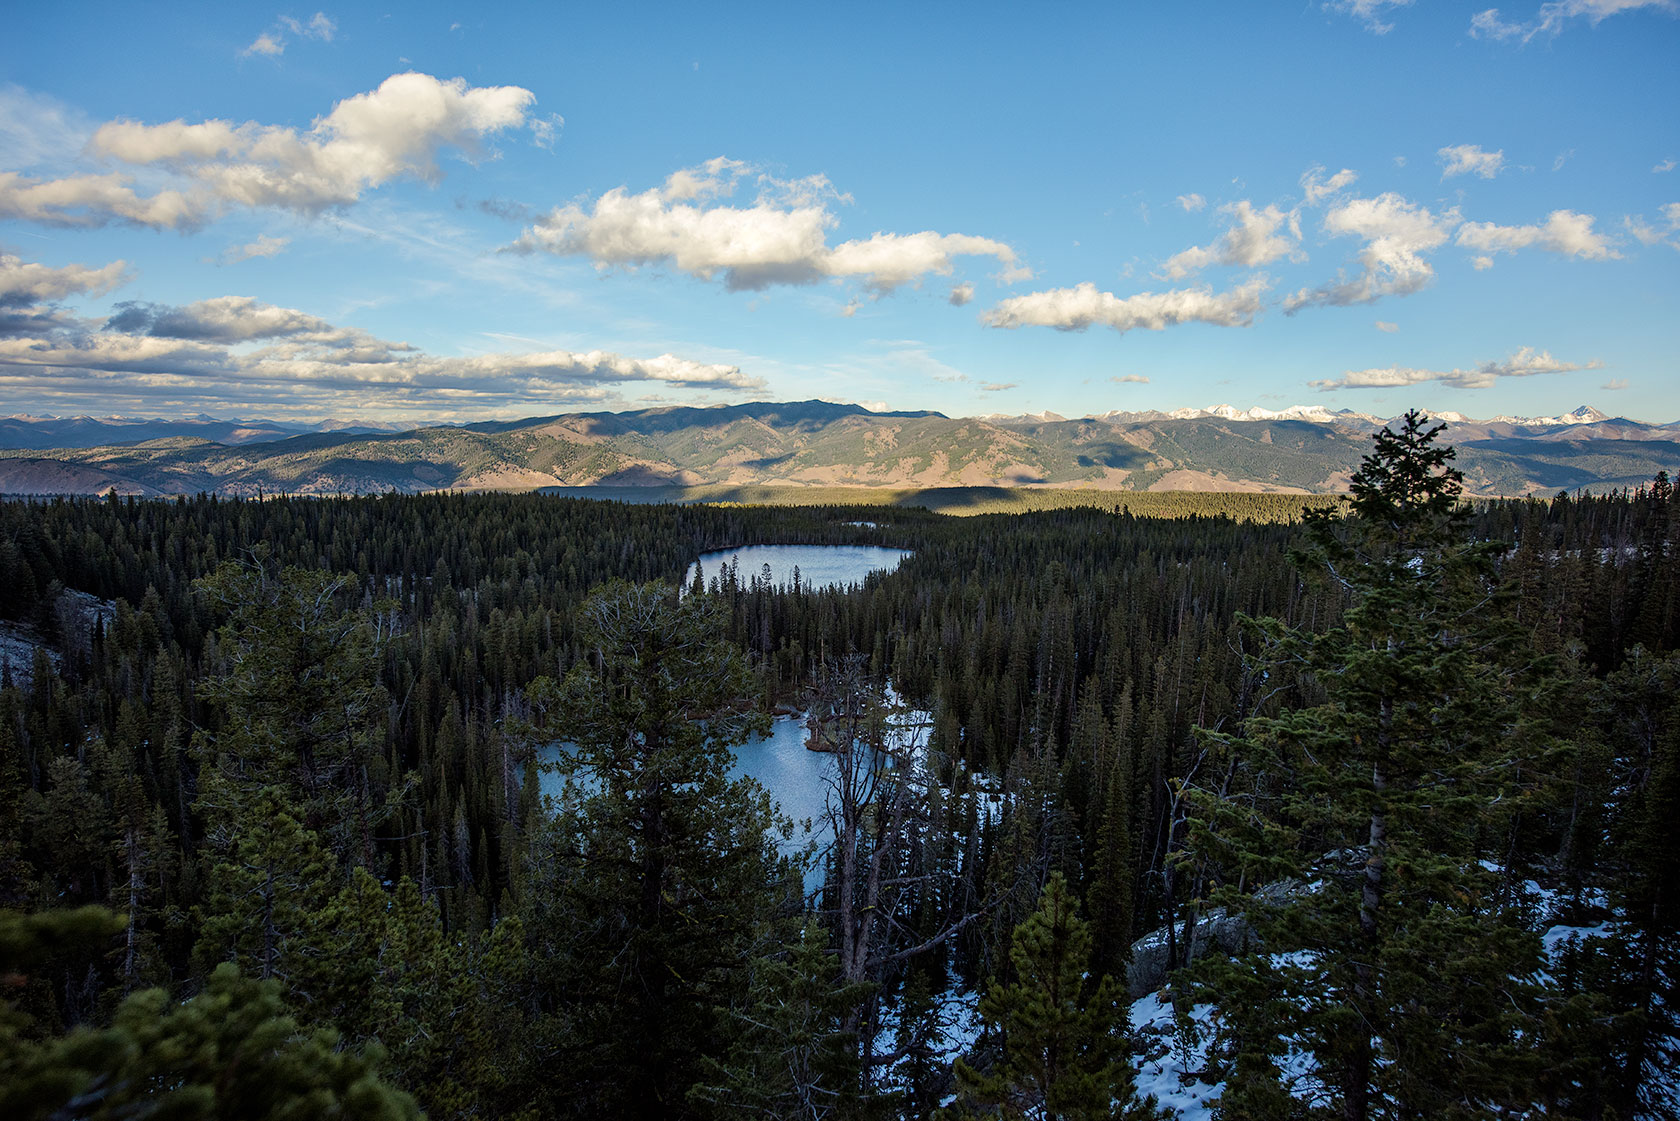 austin-trigg-patagonia-sawtooth-hiking-bench-lakes-sunset-advenure-wilderness-forest-idaho-outside-lifestyle-day-fall-weather-mountains-trees.jpg